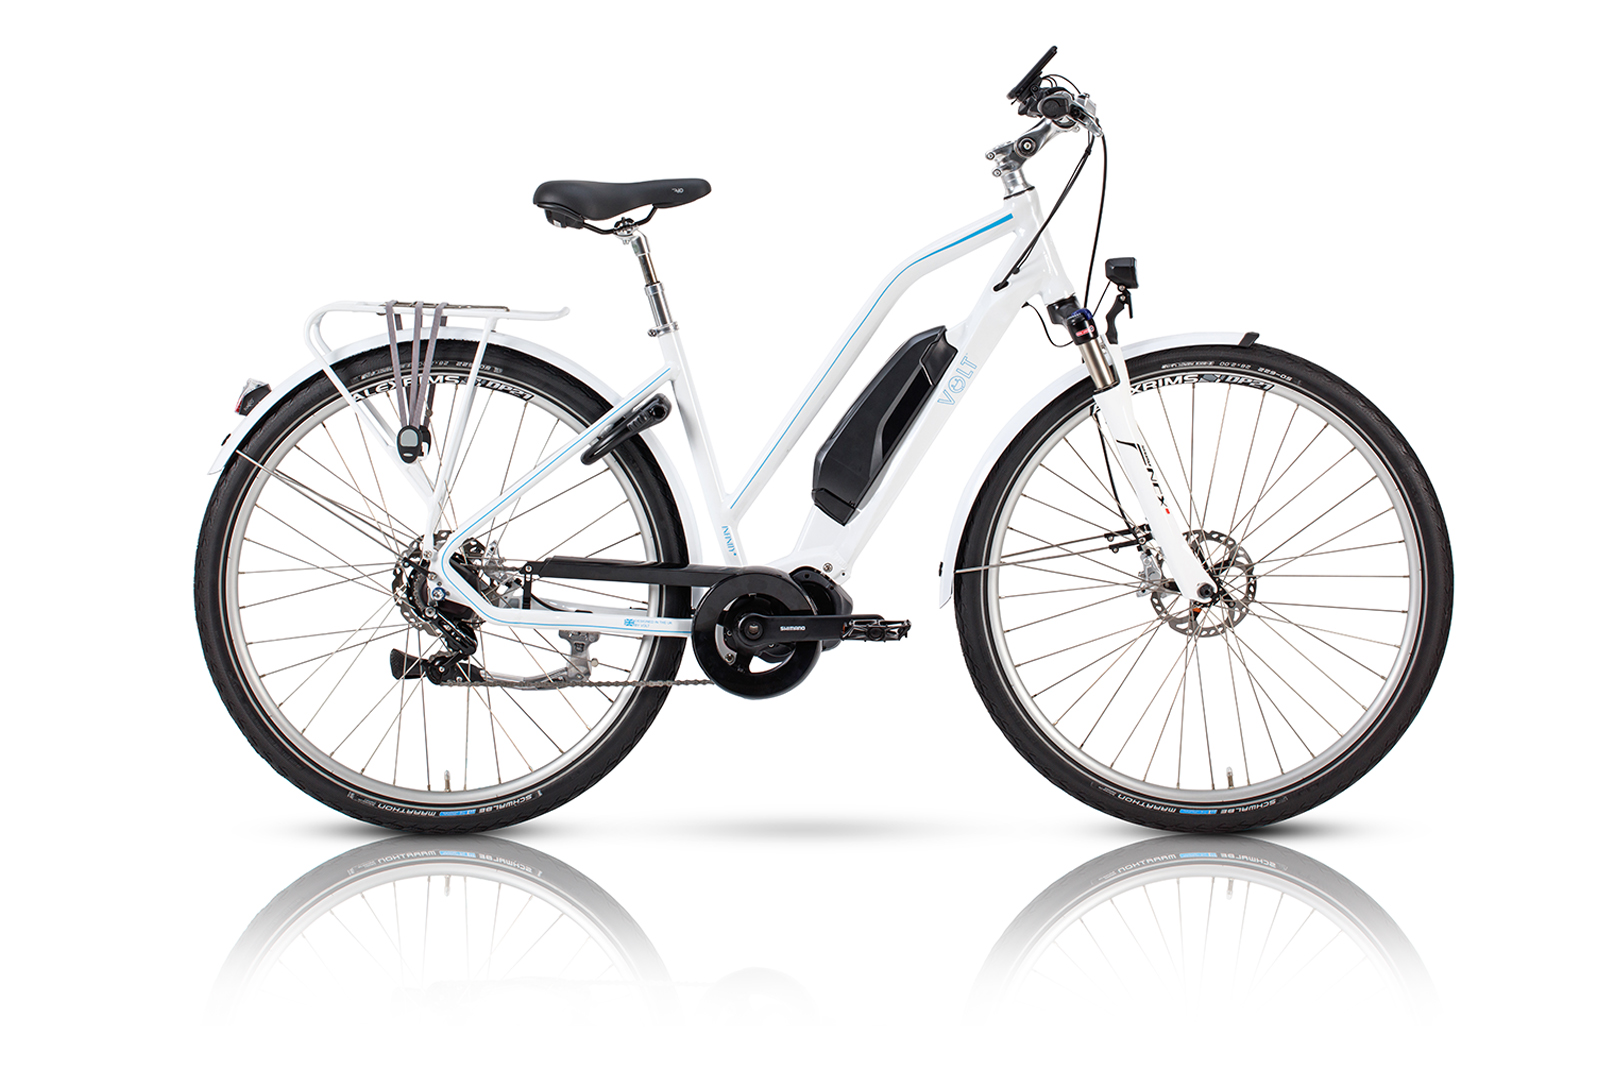 Infinity LS 2020 Model Shimano STEPS e-bike from Volt